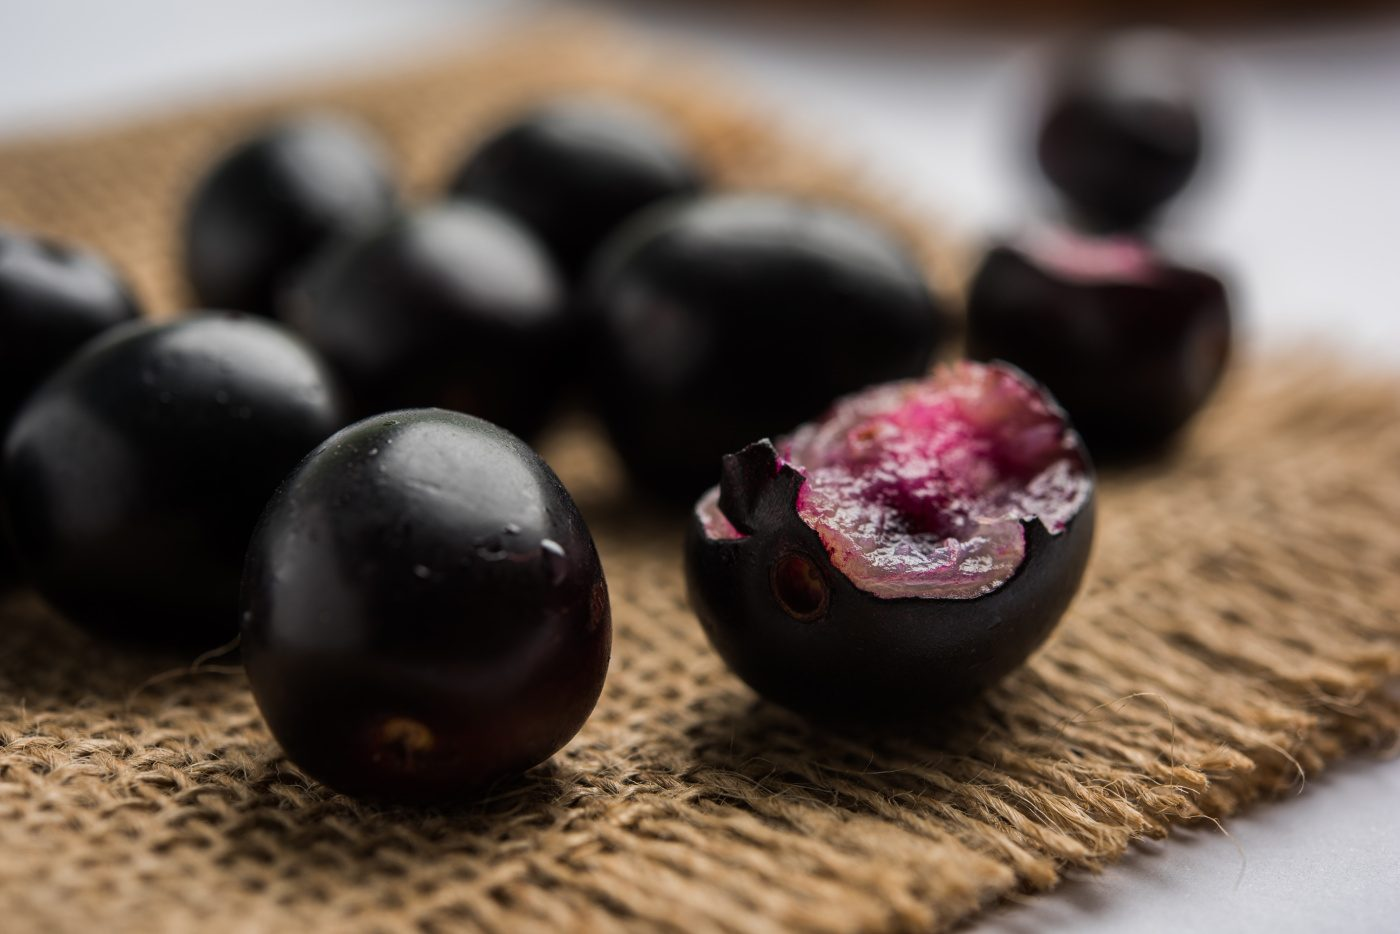 the black plum fruit known best for health!